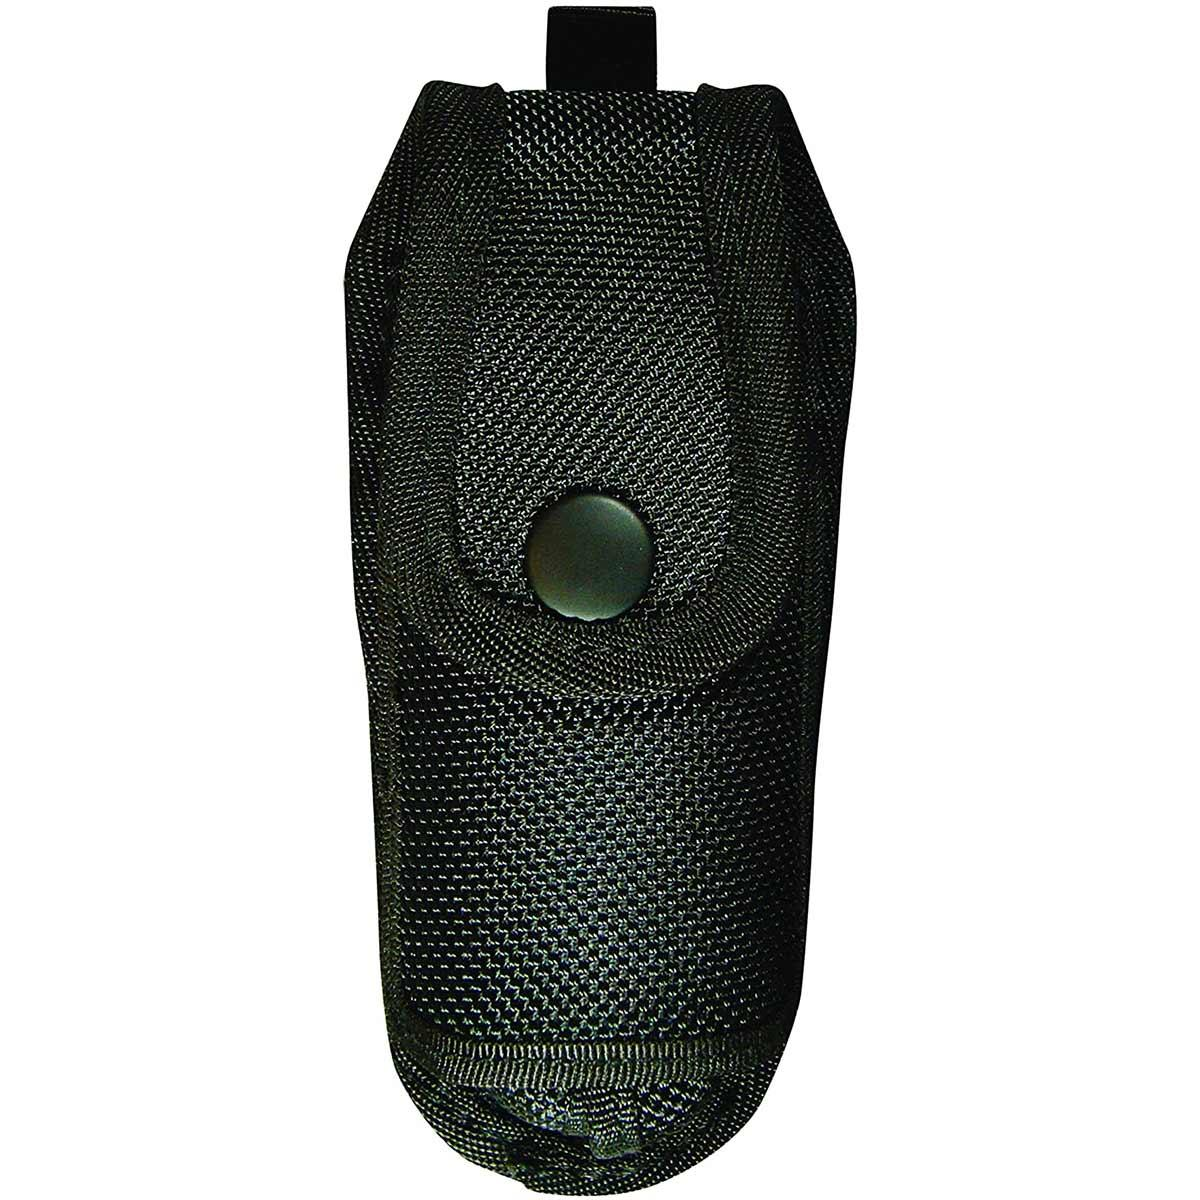 Nite Ize Tool Holster Stretch - Black_1.jpg